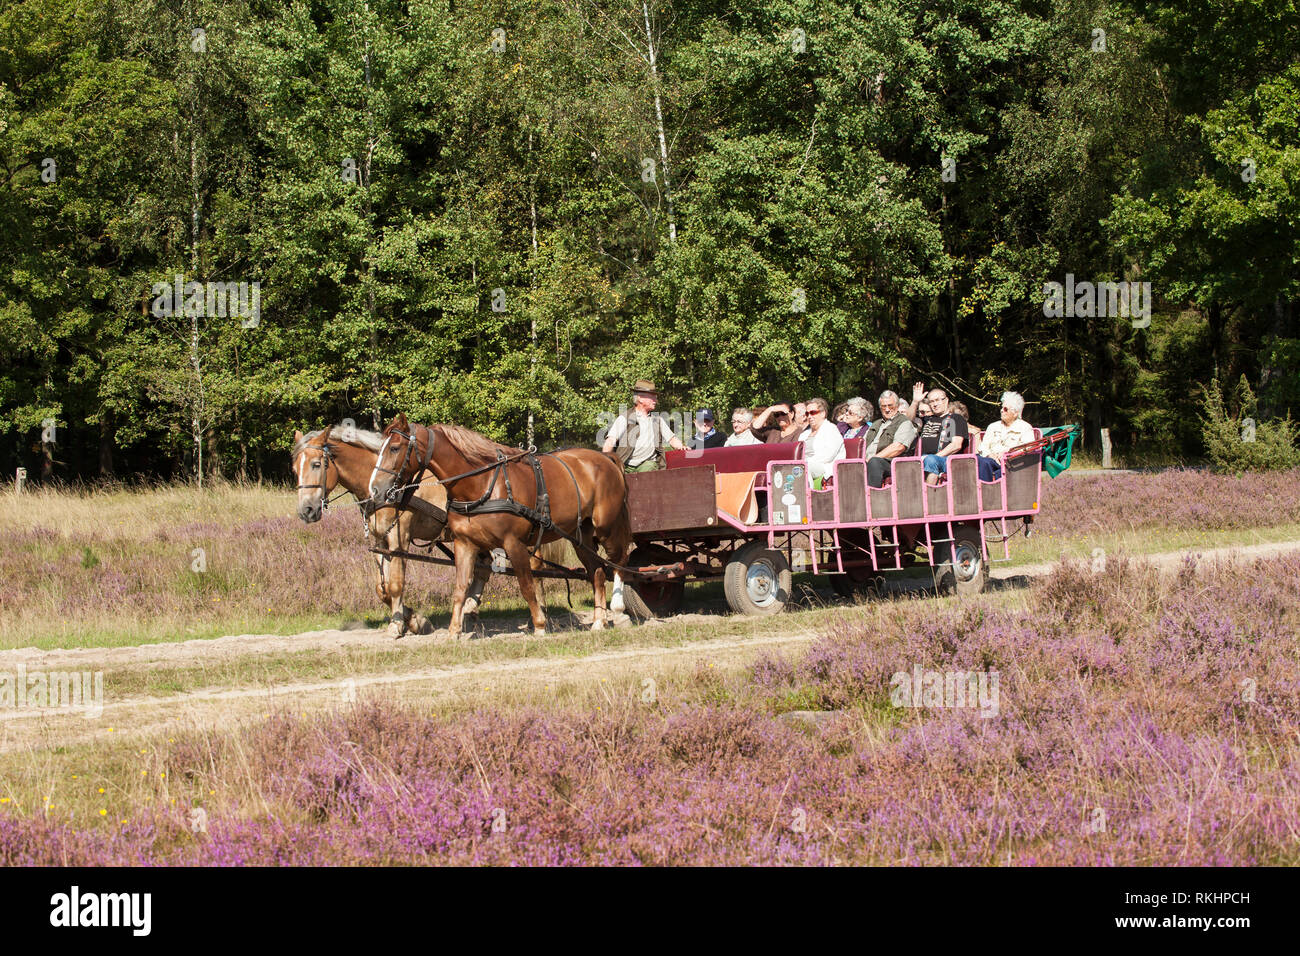 ourists in a horse-drawn carriage in the landscape with flowering heather (Calluna vulgaris) nature reserve Lueneburg Heath, Lower Saxony, Germany, Eu Stock Photo